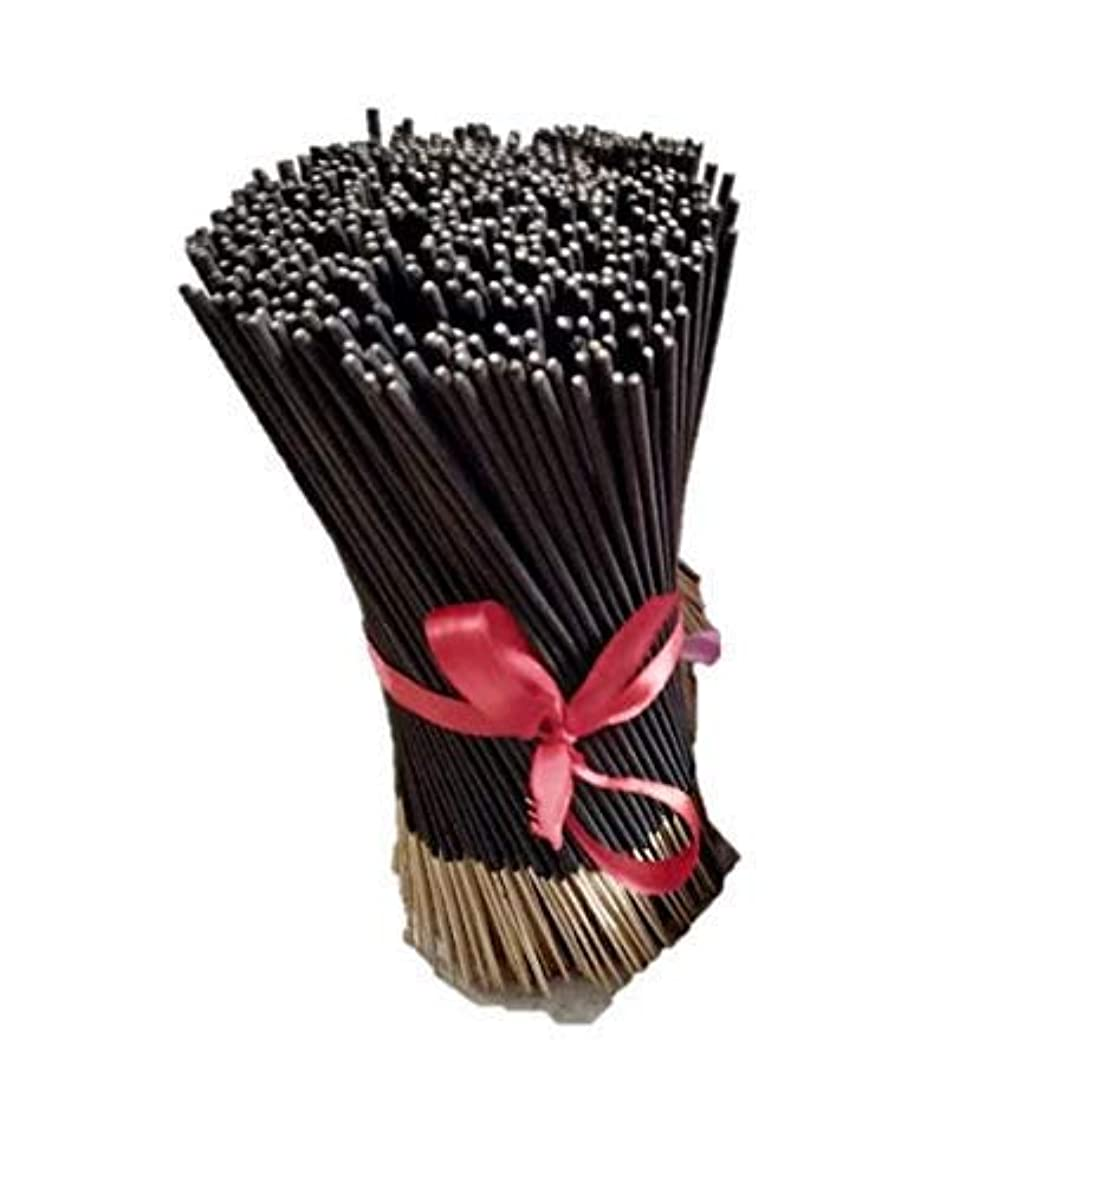 換気する過半数鉄道Aroma Natural Products Raw Charcoal Incense Stick 1 Kilograms